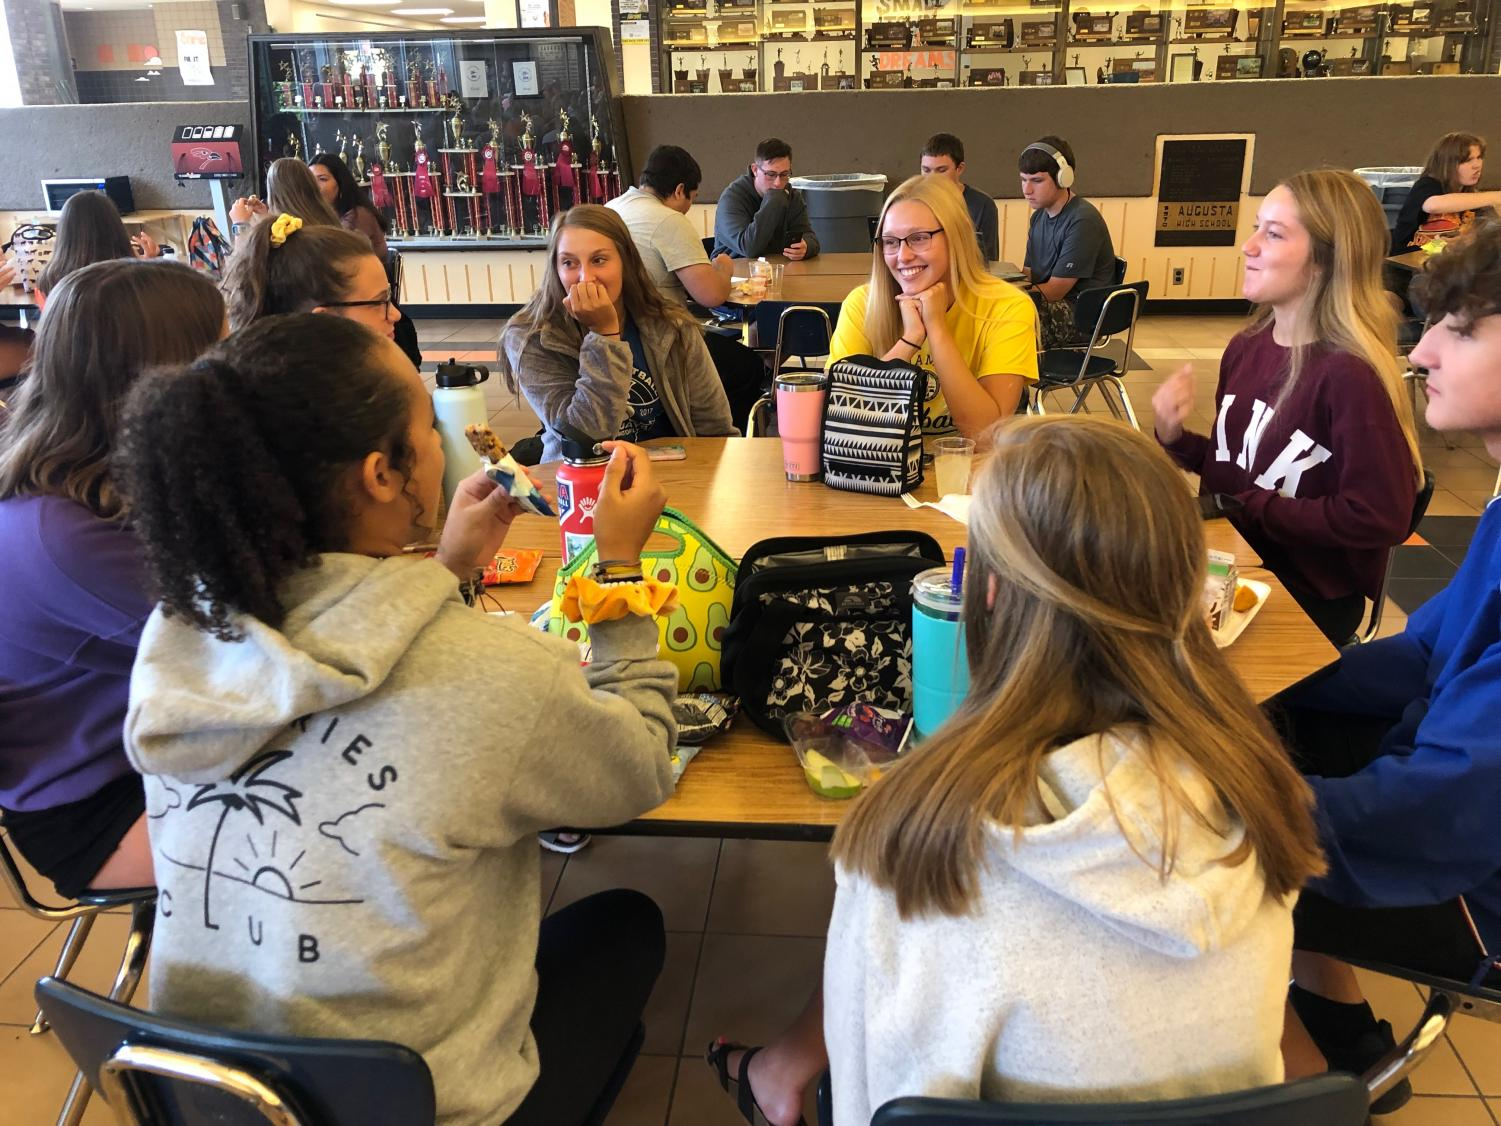 A group of students both eating and socializing at the same time. These students were laughing at a joke junior Ashlyn Bowen made.